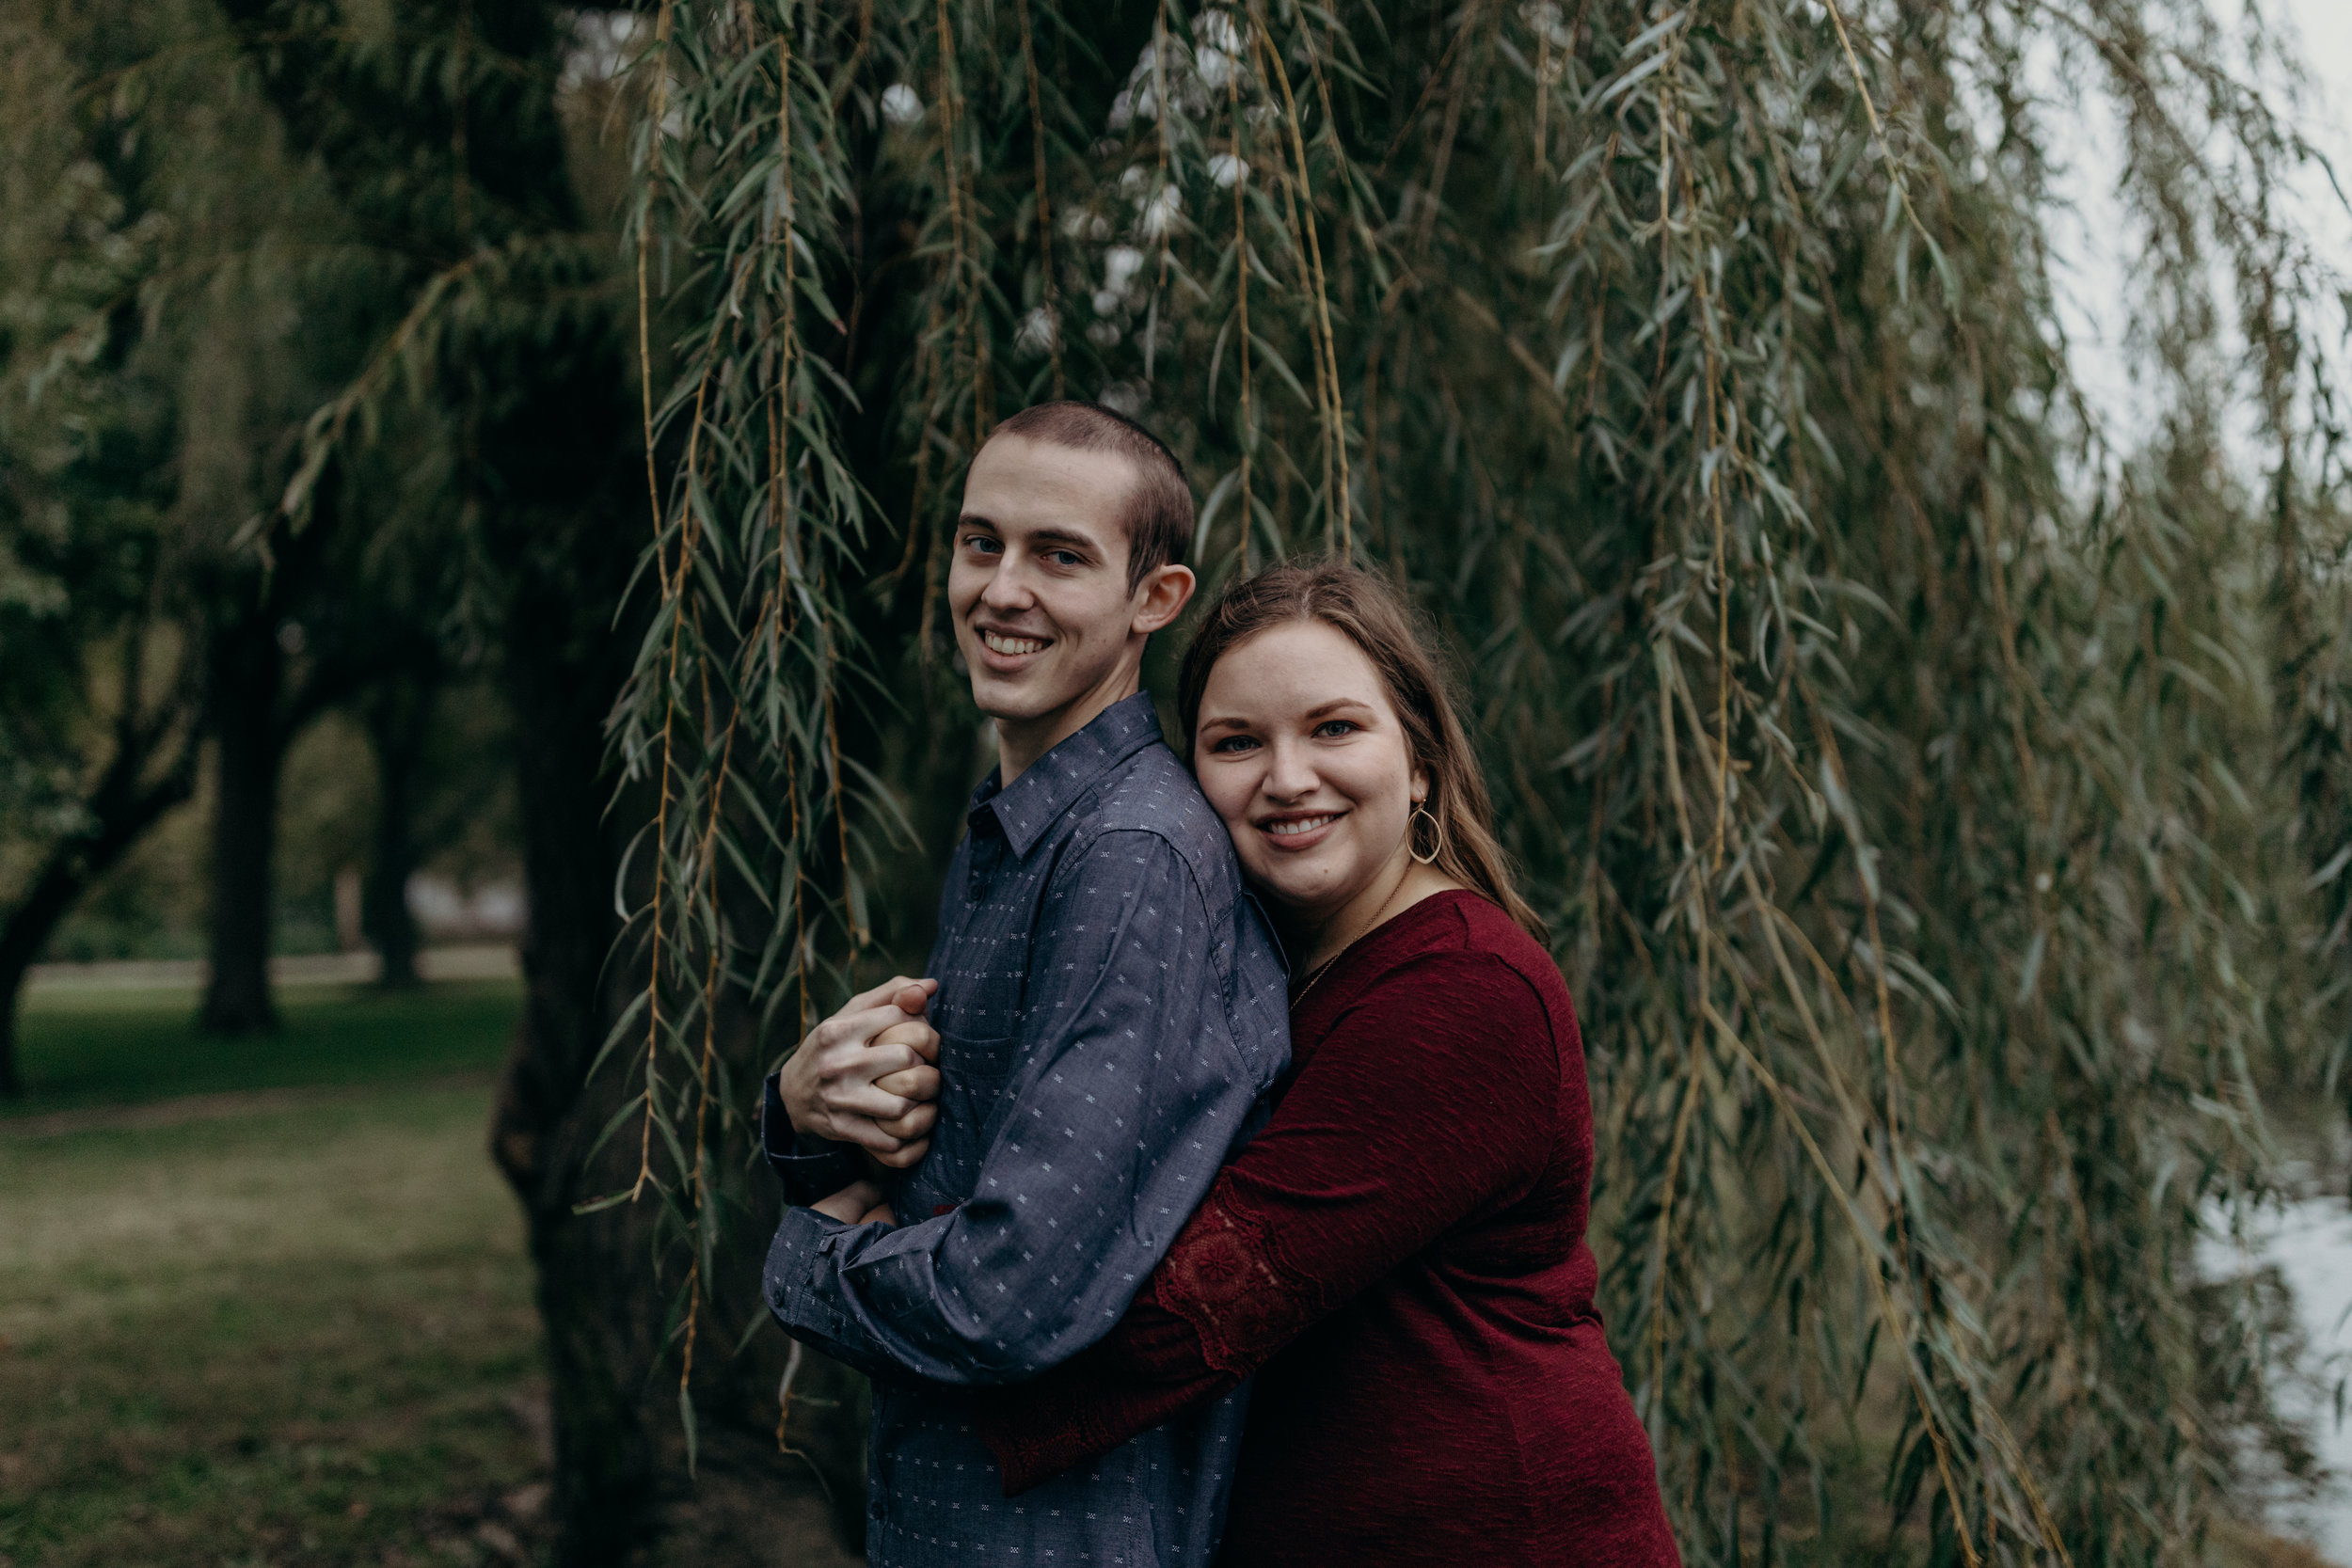 Addison & Cody Engagement Session-158.jpg